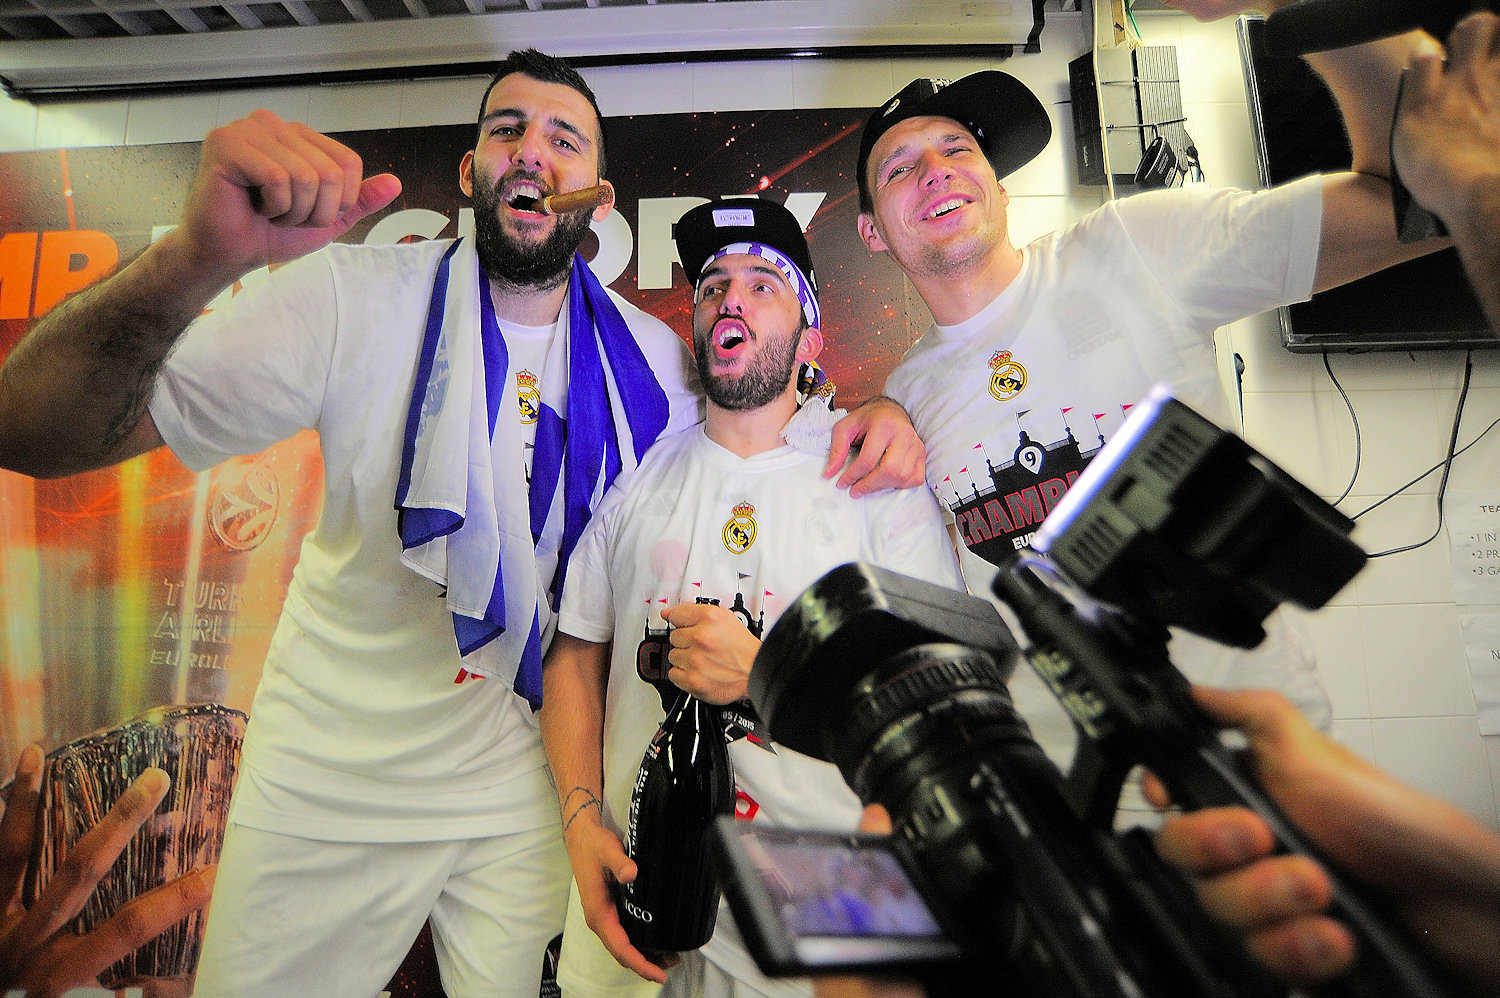 Bourousis, Campazzo and Maciulis celebrates - Real Madrid is the new champ Euroleague 2014-15 - Final Four Madrid 2015 - EB14